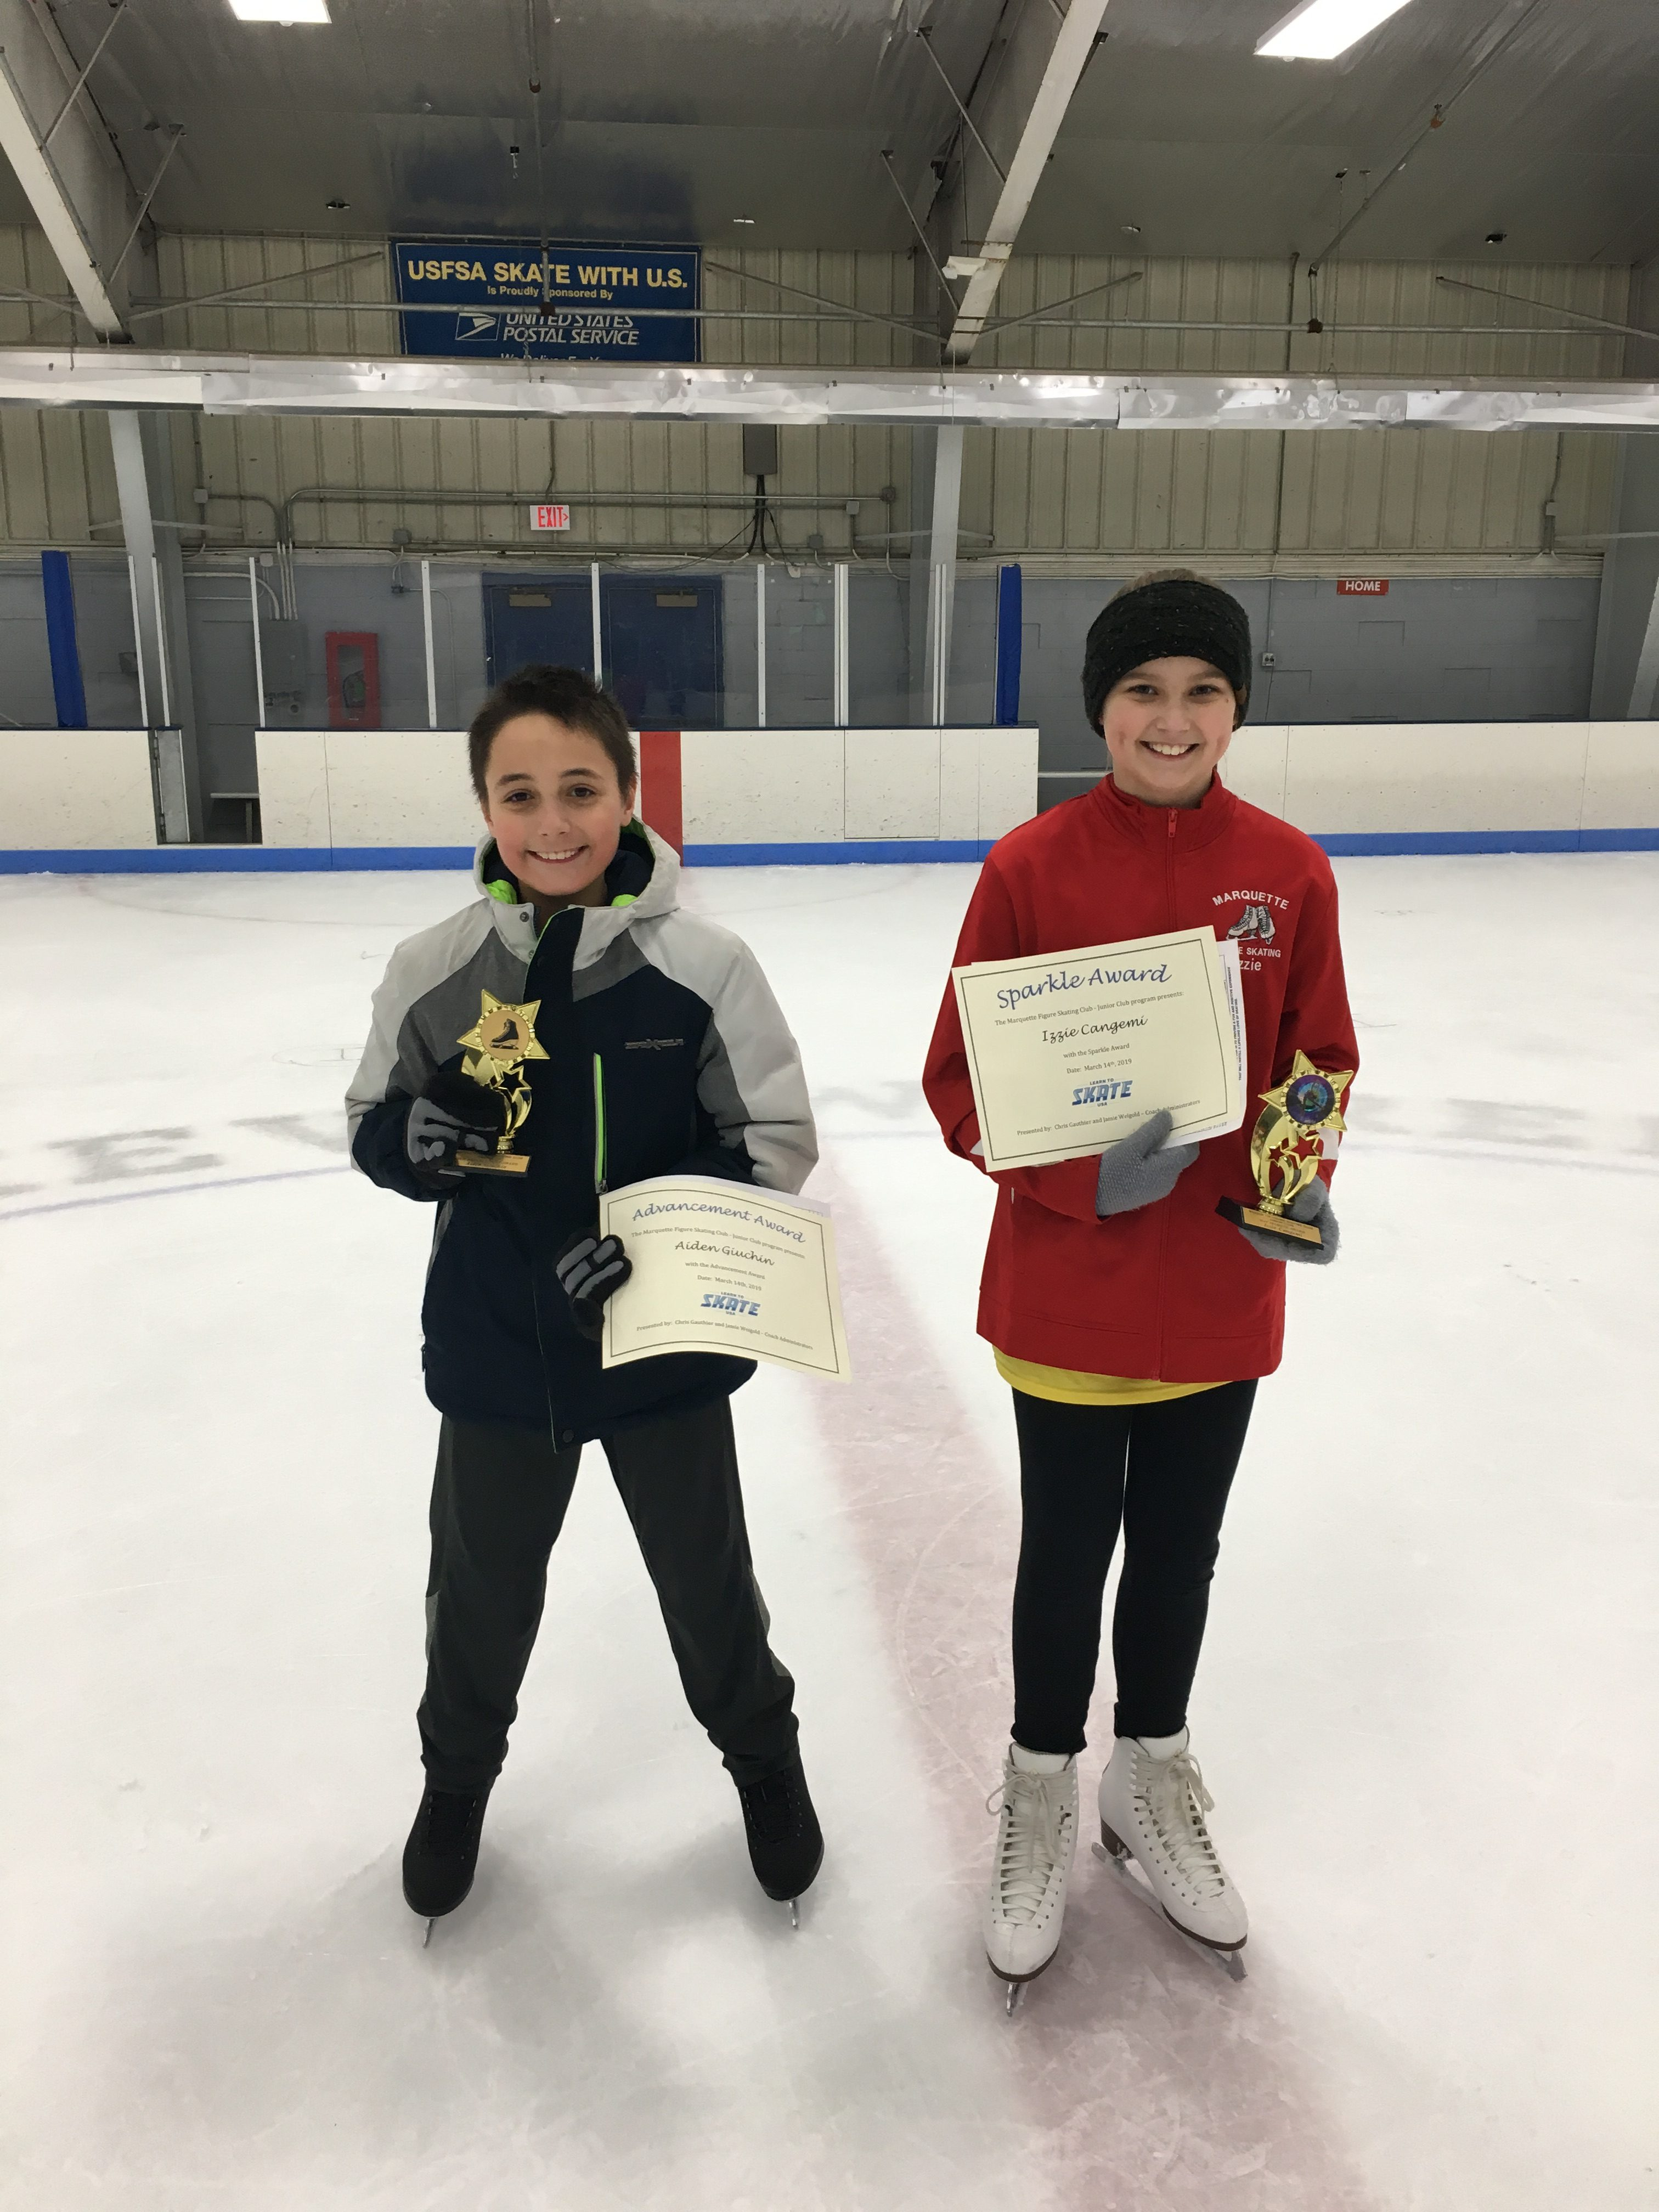 Learn to Skate March 2019, Aiden Giuchen Advancement, Izzie Cangemi Sparkle